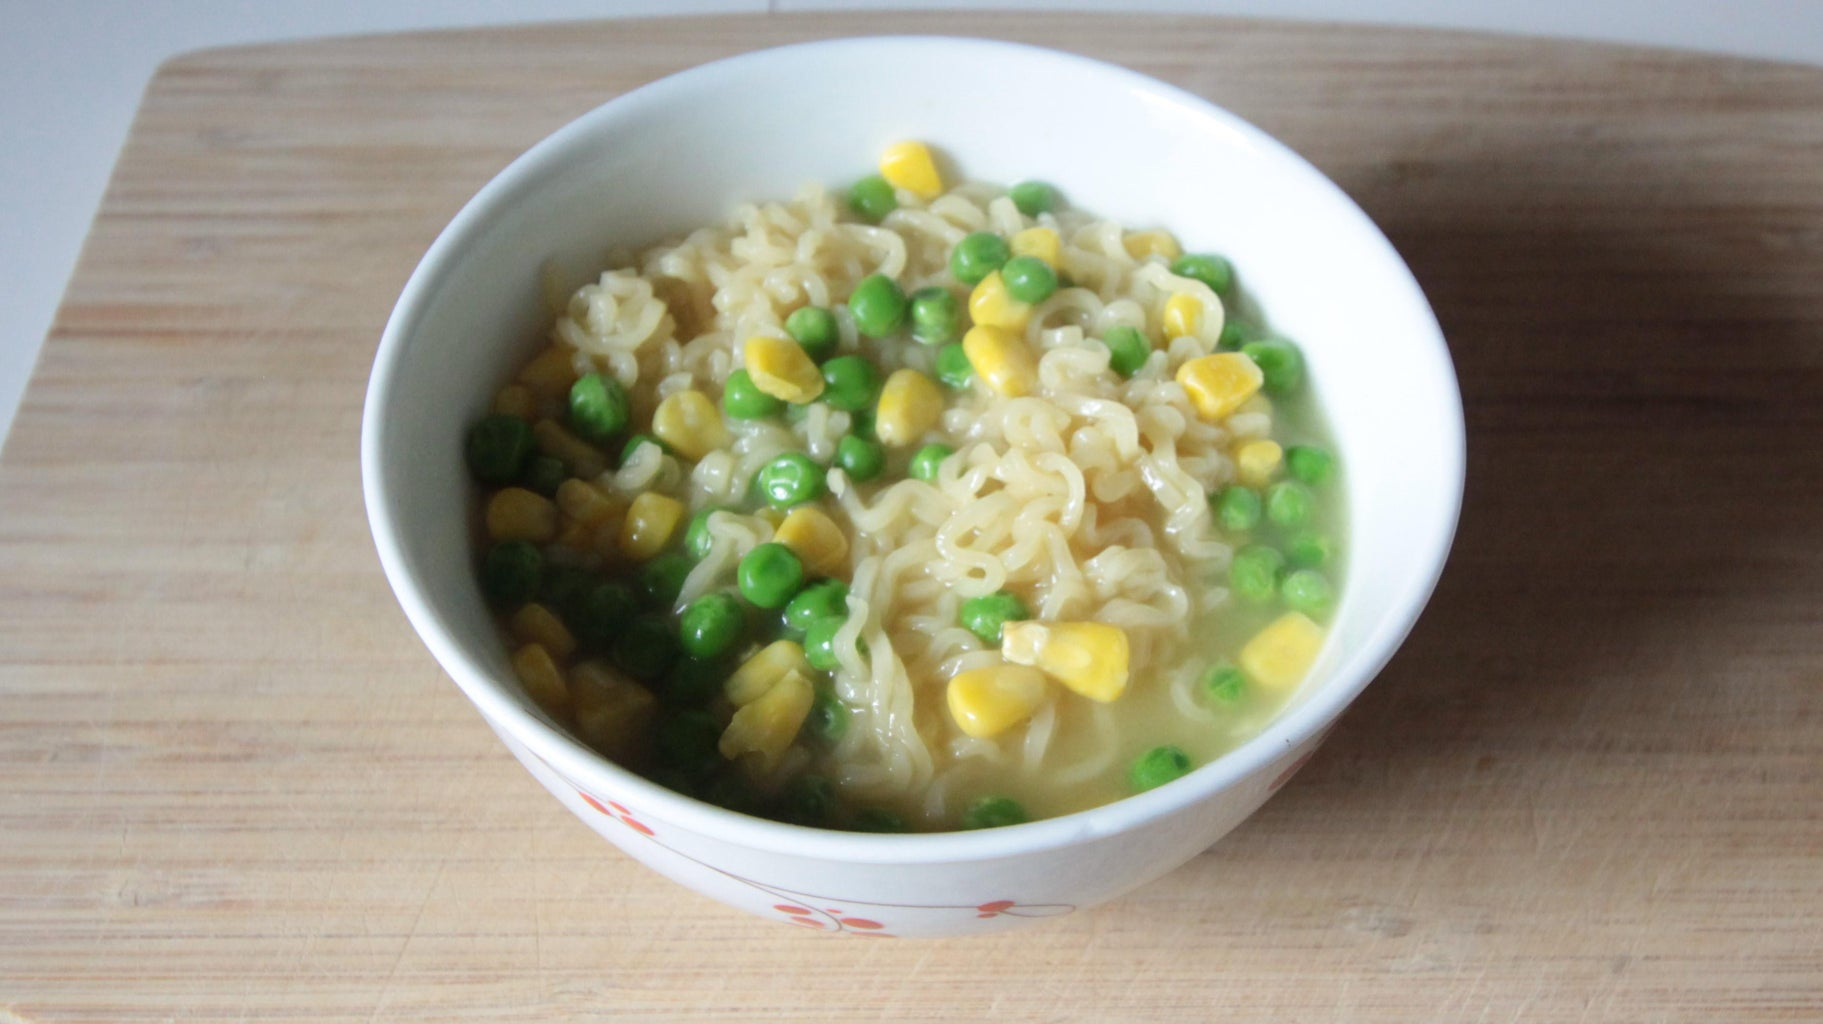 Use the Ramen to Cook Your Vegetables